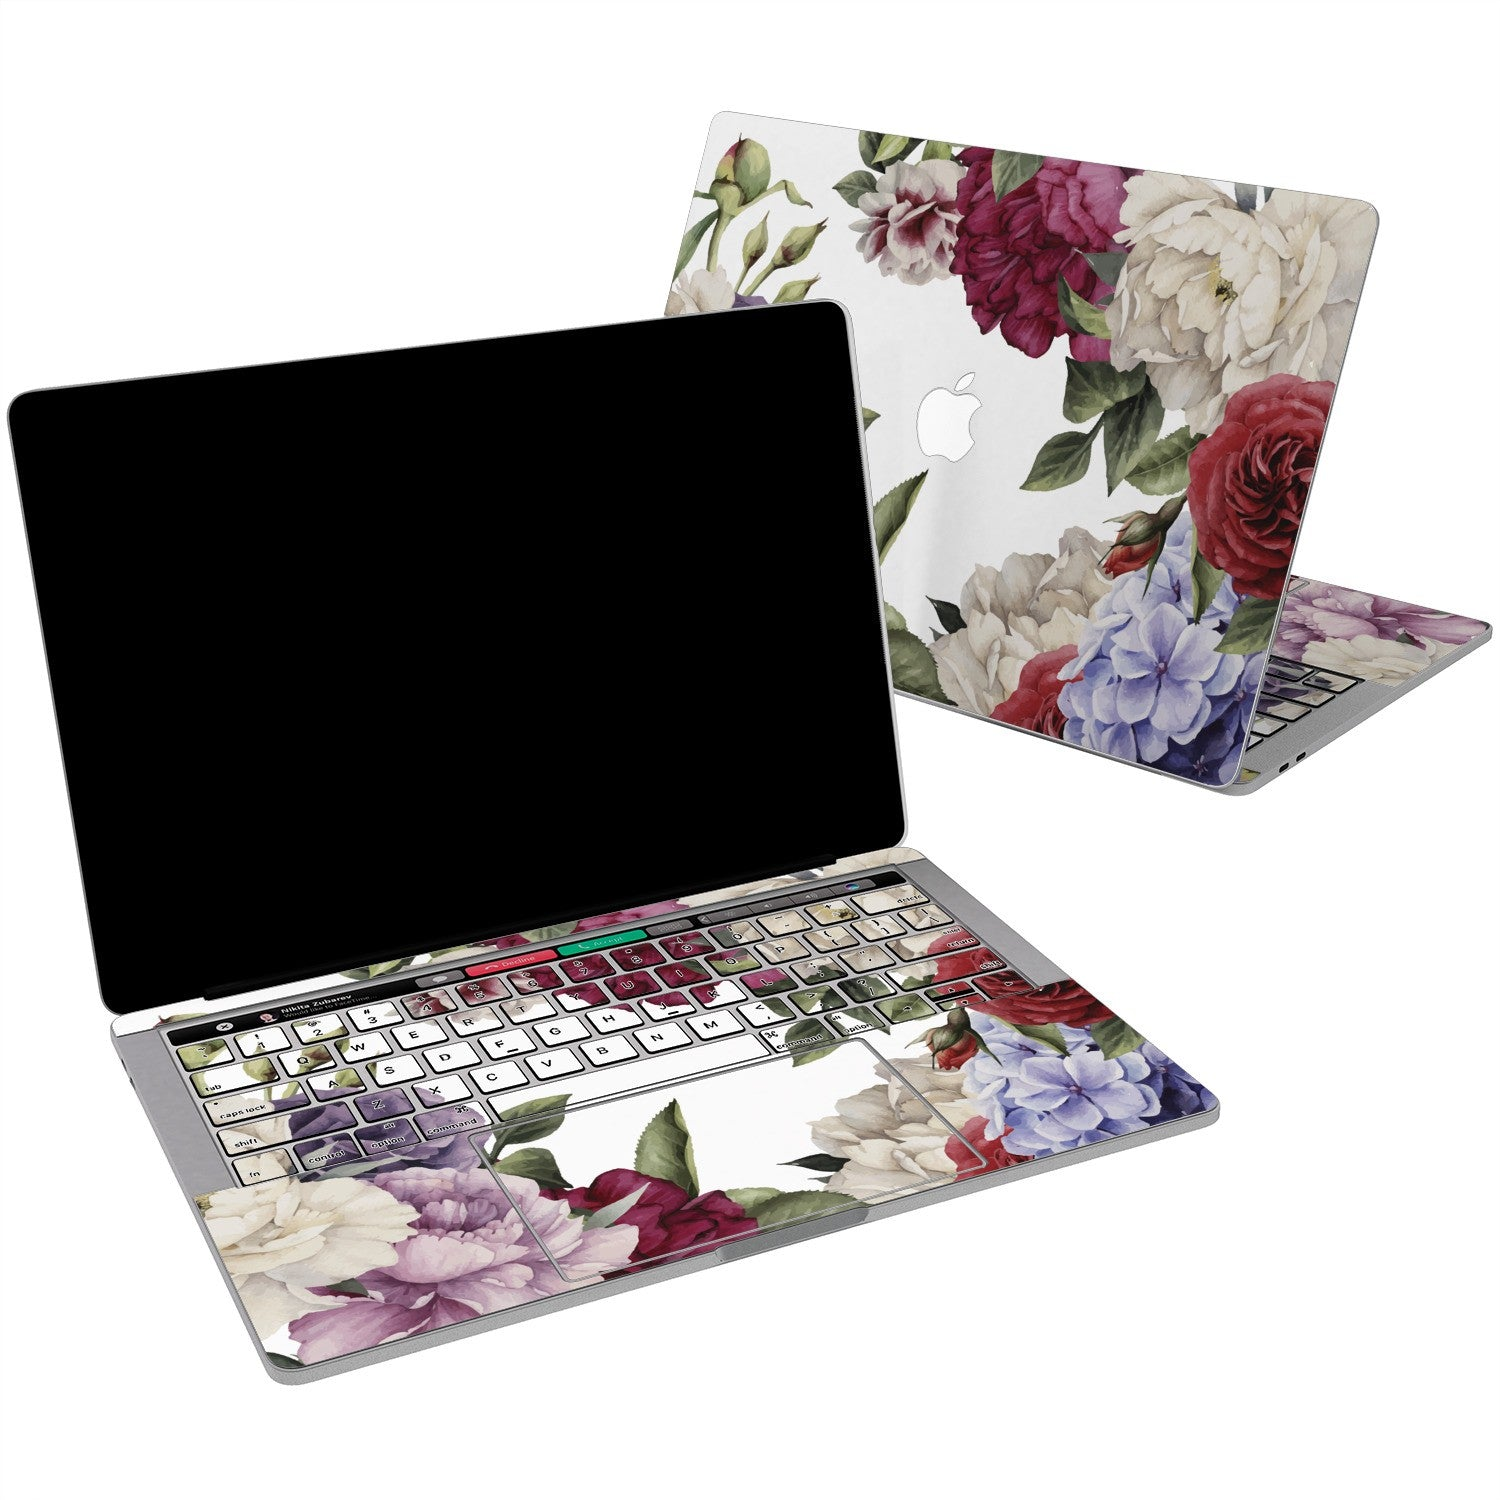 Lex Altern Colorful Flowers Art Vinyl Skin for your Laptop Apple Macbook.